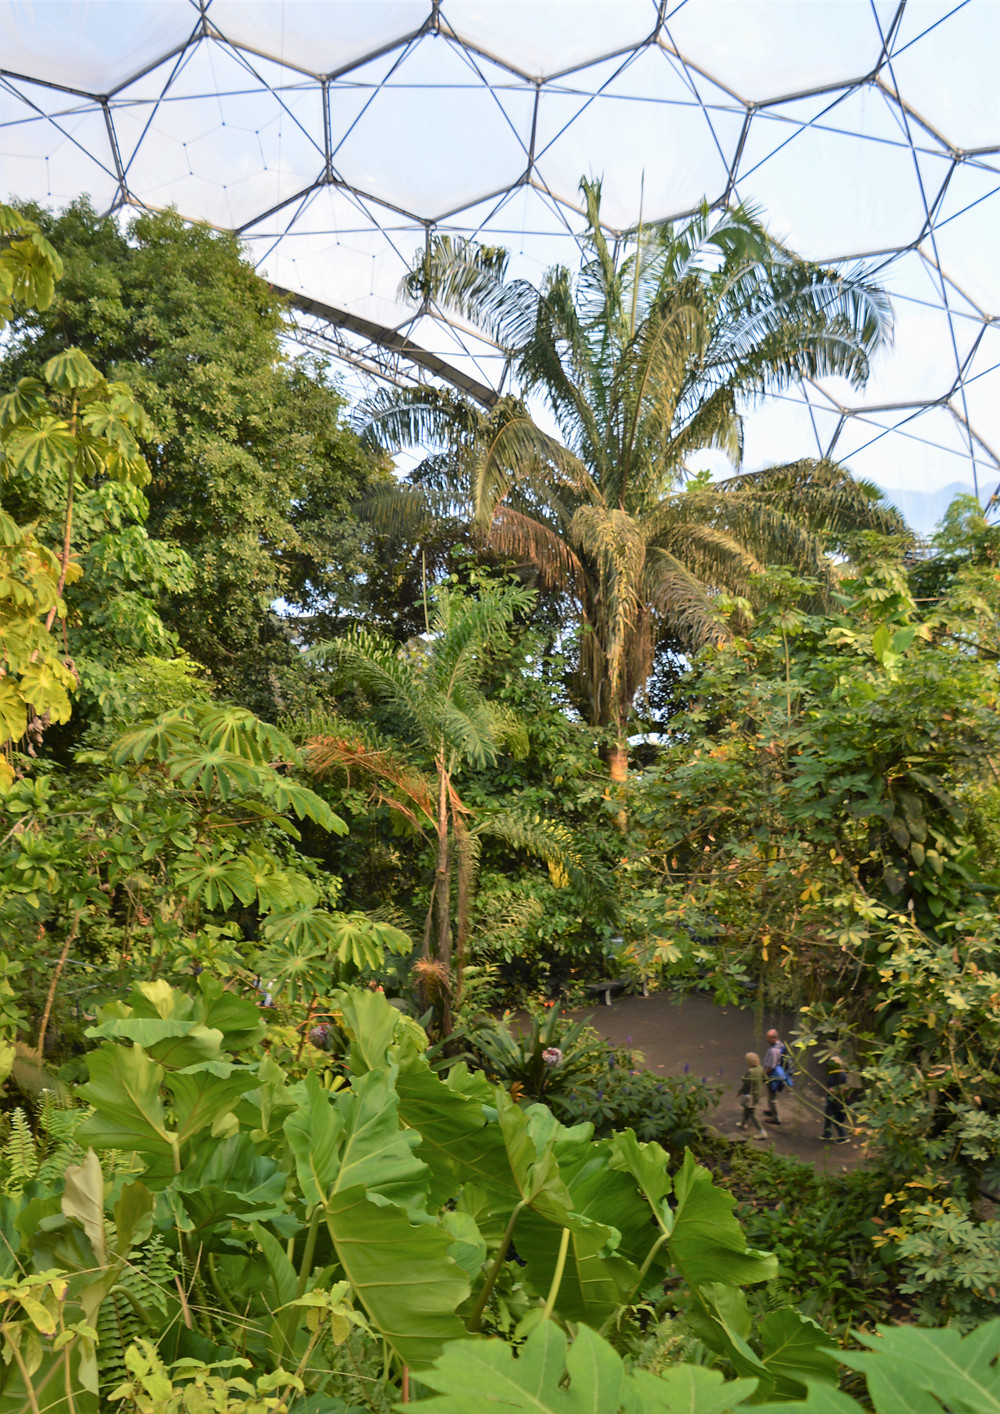 The Rainforest Biome in the Eden Project contains over 1,200 different species of plant from West